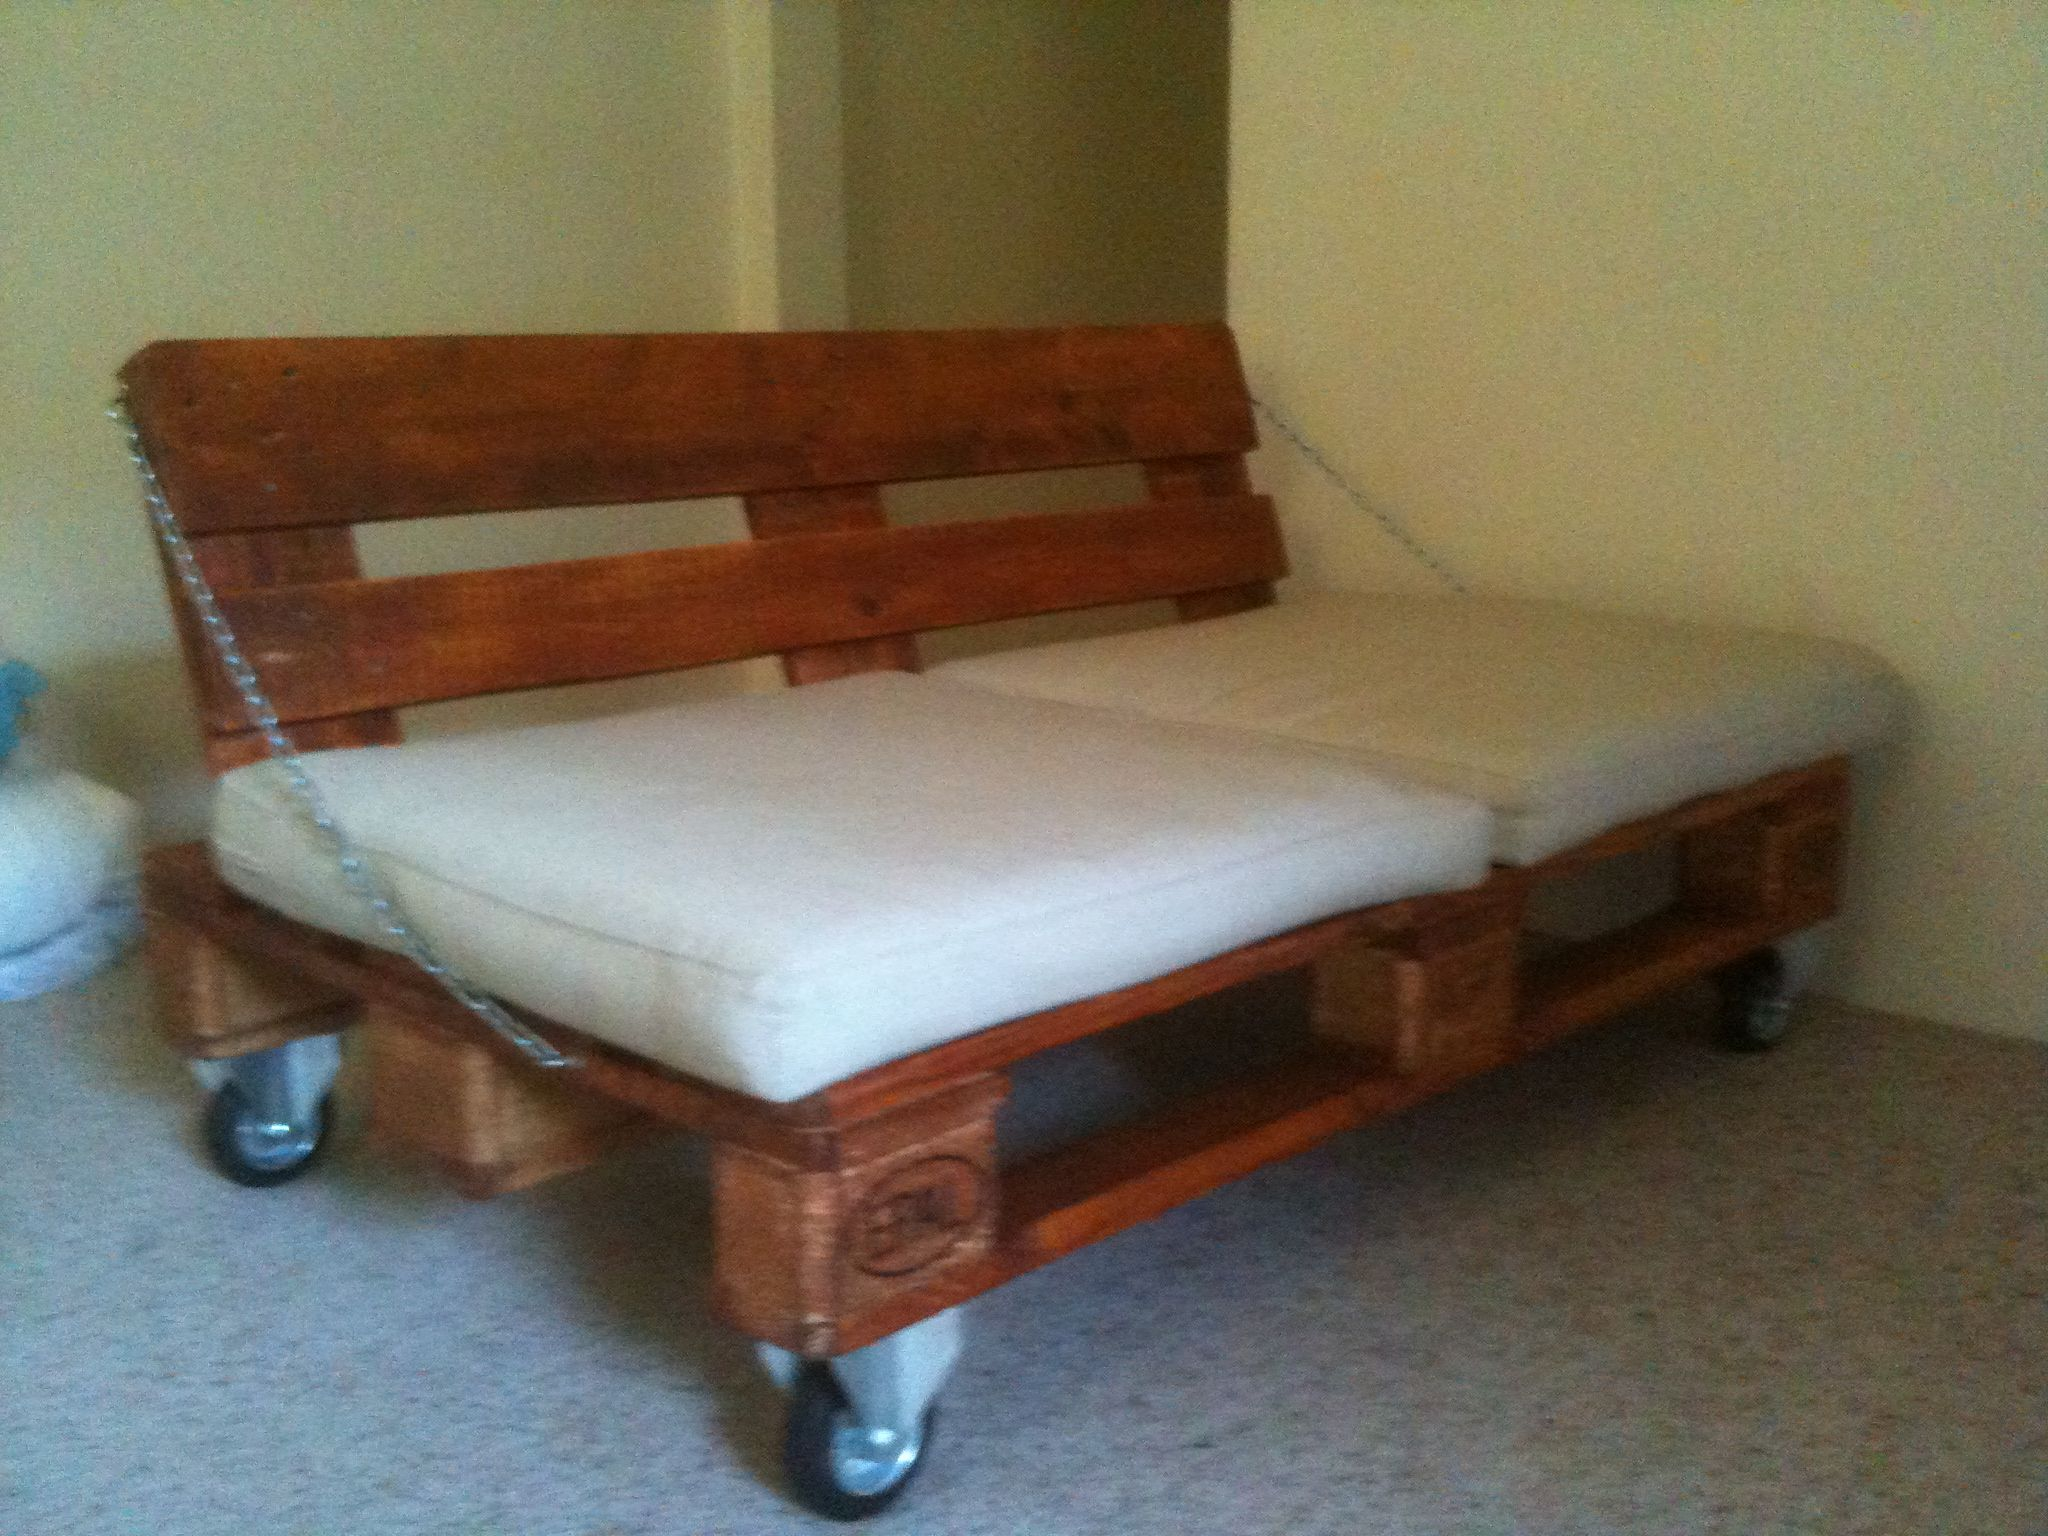 My DIY Euro Pallet Sofa On Industrial Caster Wheels With Stainless Steel  Chain Supports!